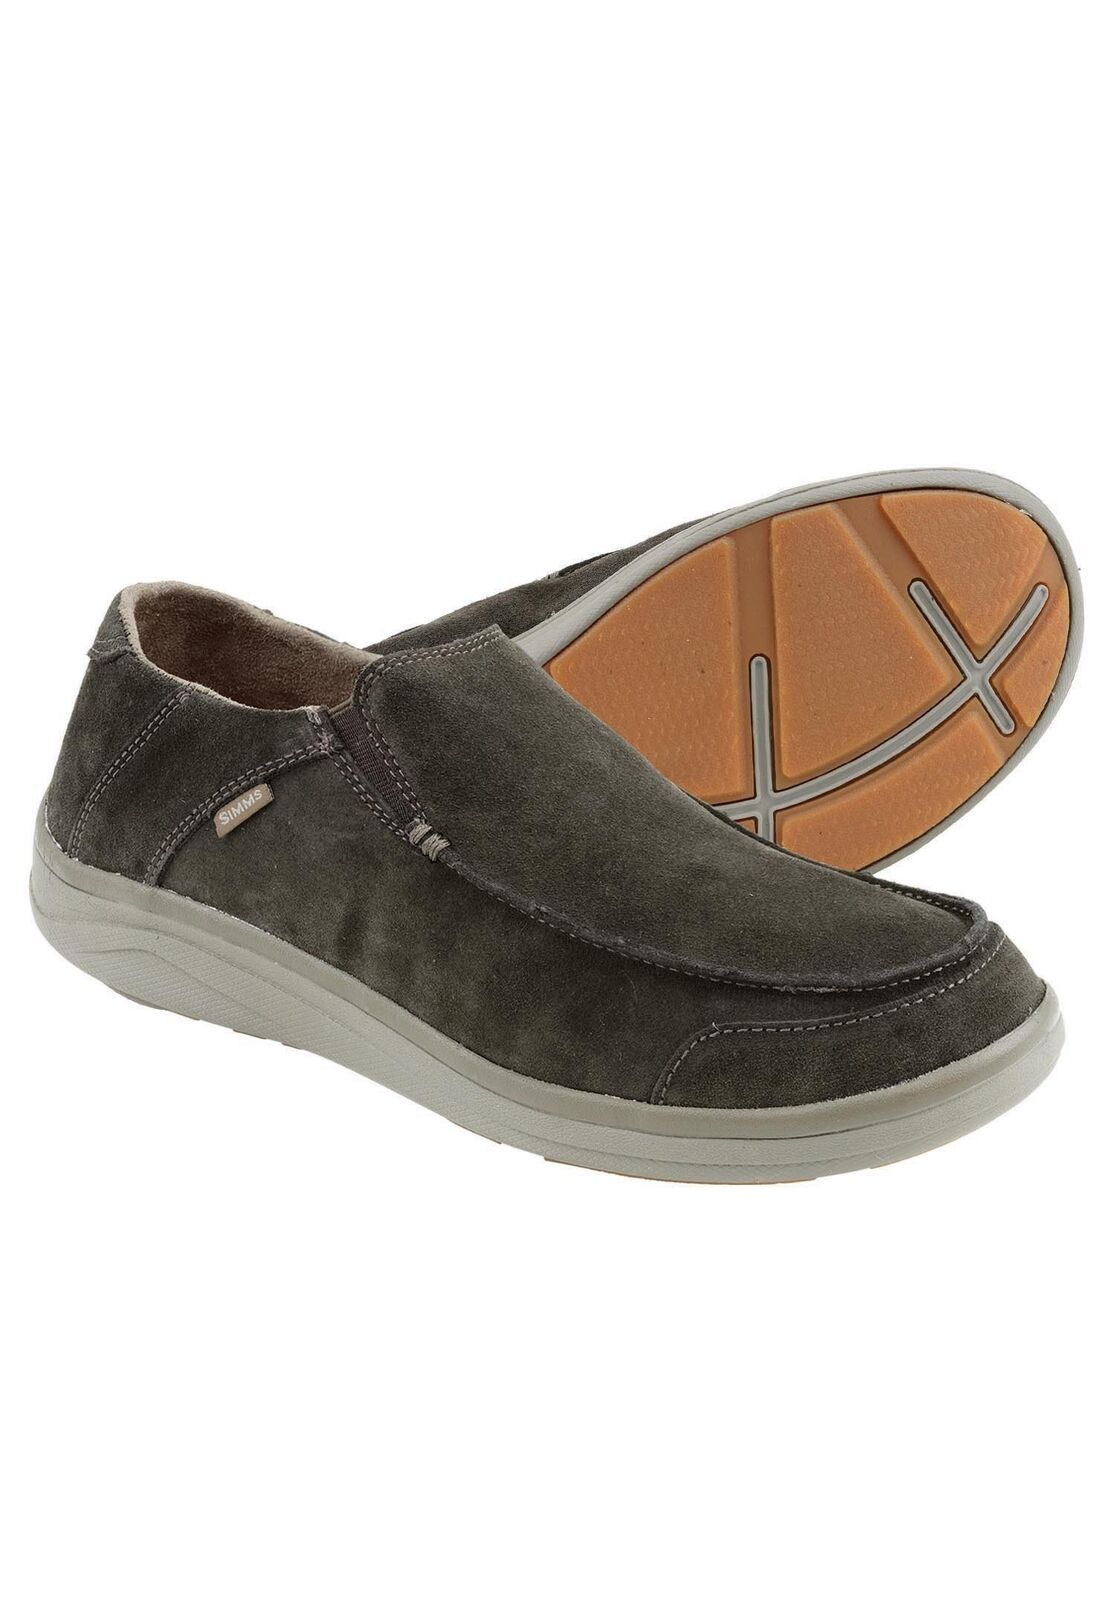 Simms Westshore Leather  Slip On shoes Dark Olive - Size 7 -CLOSEOUT  brand outlet